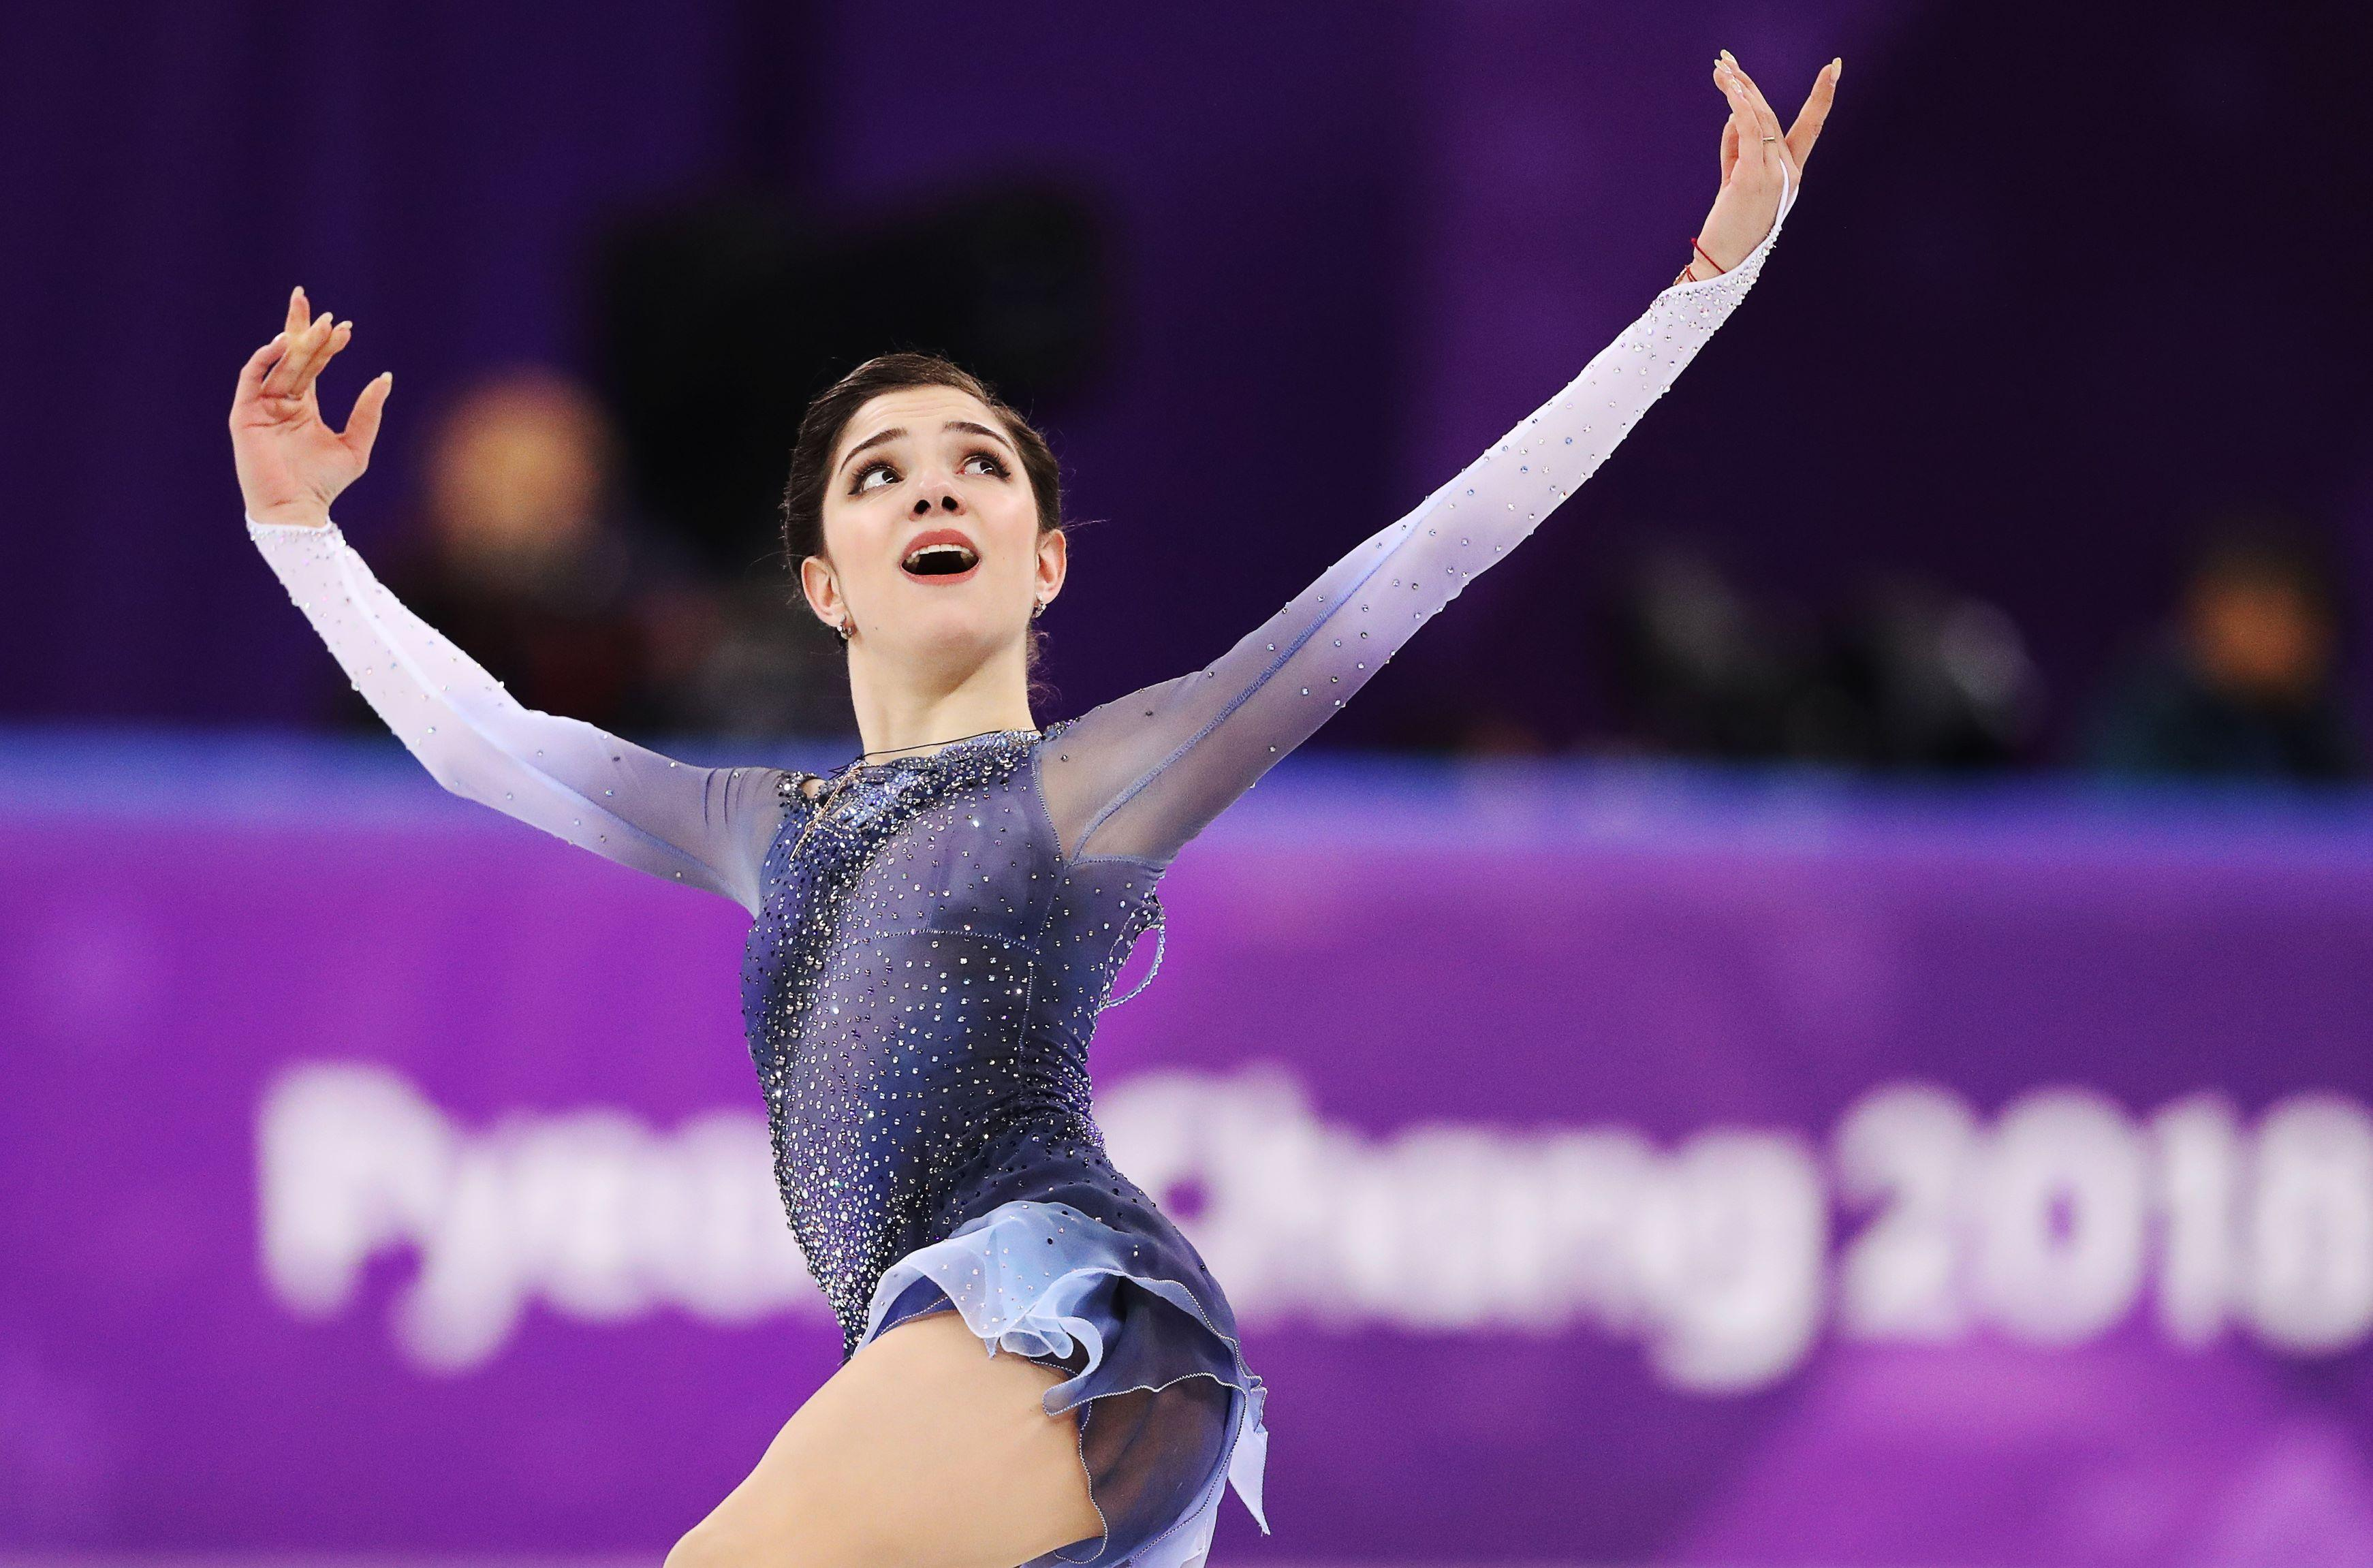 Figure Skating - Pyeongchang 2018 Winter Olympics - Ladies Single Skating Short Program - Gangneung, South Korea - February 21, 2018 - Evgenia Medvedeva, an Olympic Athlete from Russia, performs. Lucy Nicholson